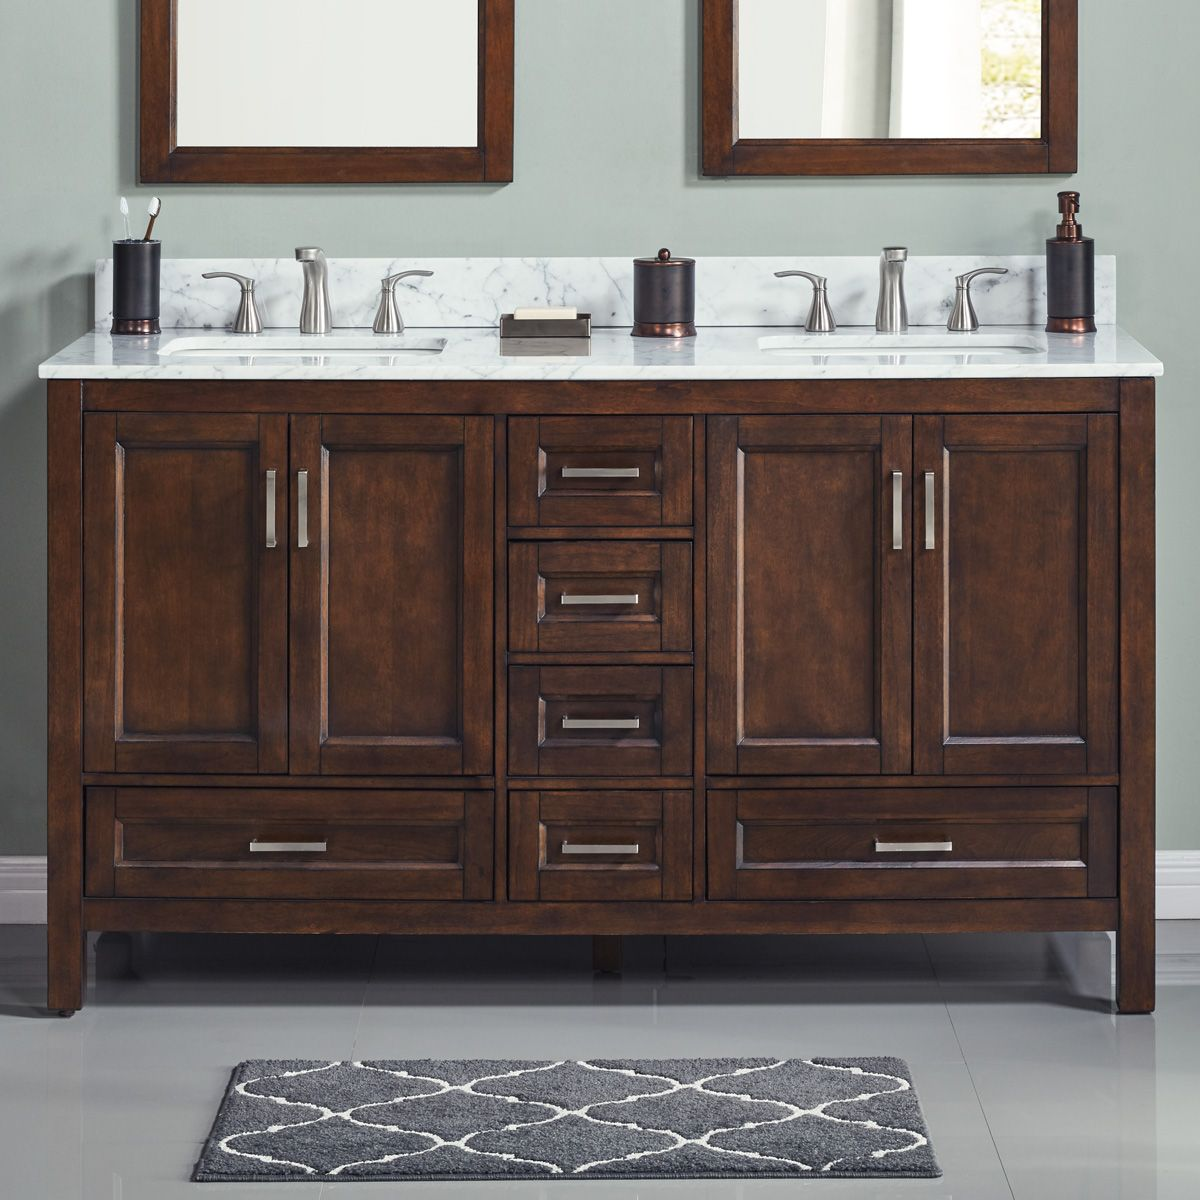 lowes vanity configurator with images double sink on lowes vanity id=42039